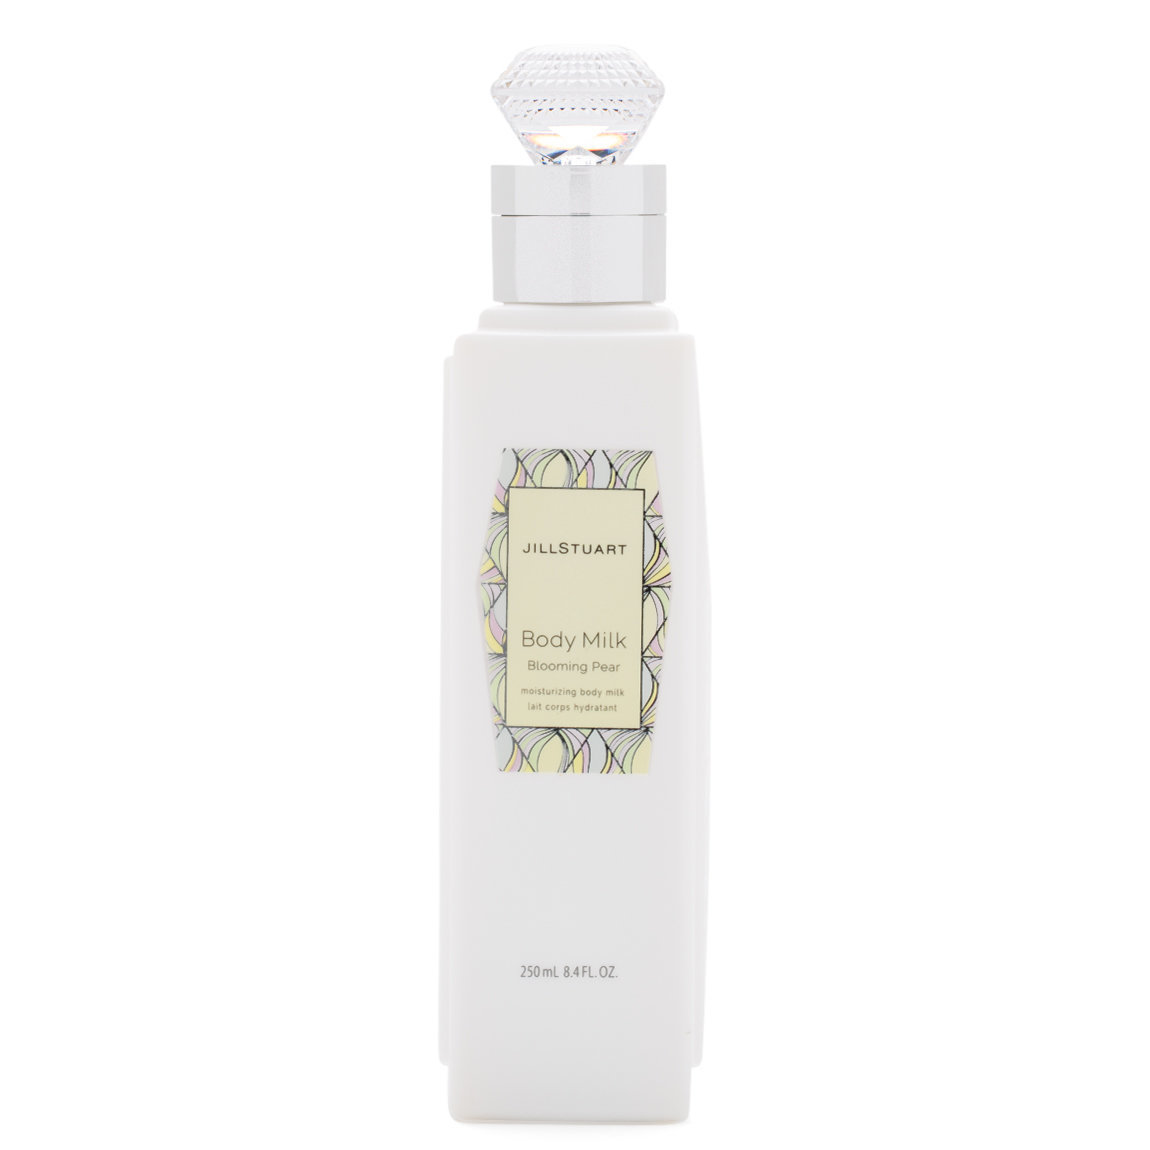 JILL STUART Beauty Body Milk Blooming Pear product smear.